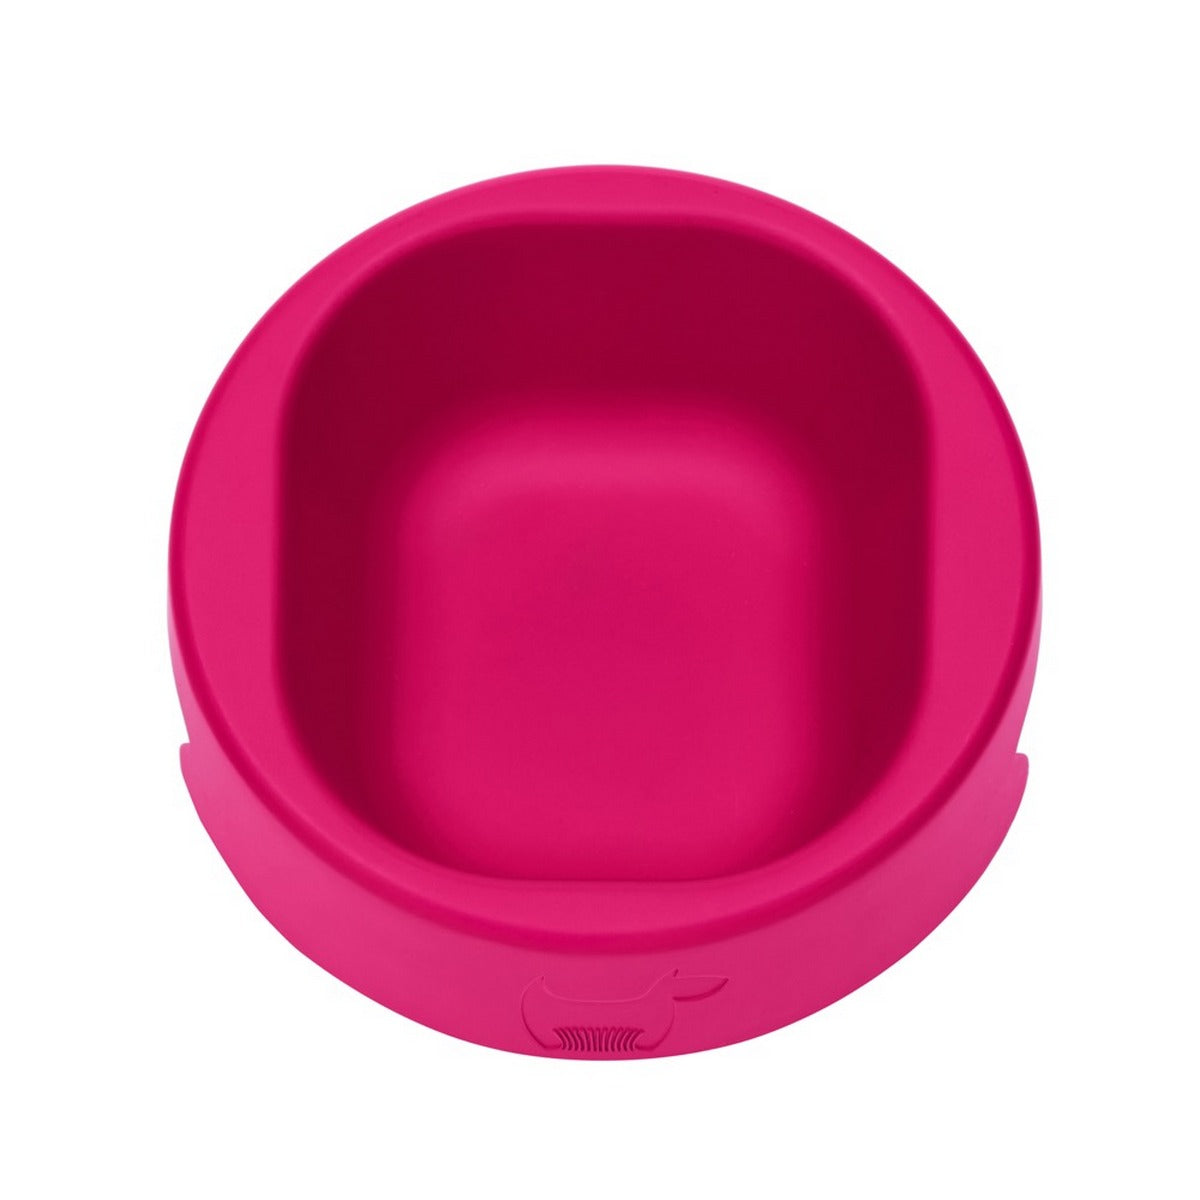 HERO Bowl Raspberry Rose Large 23cm (1000ml) - Hownd